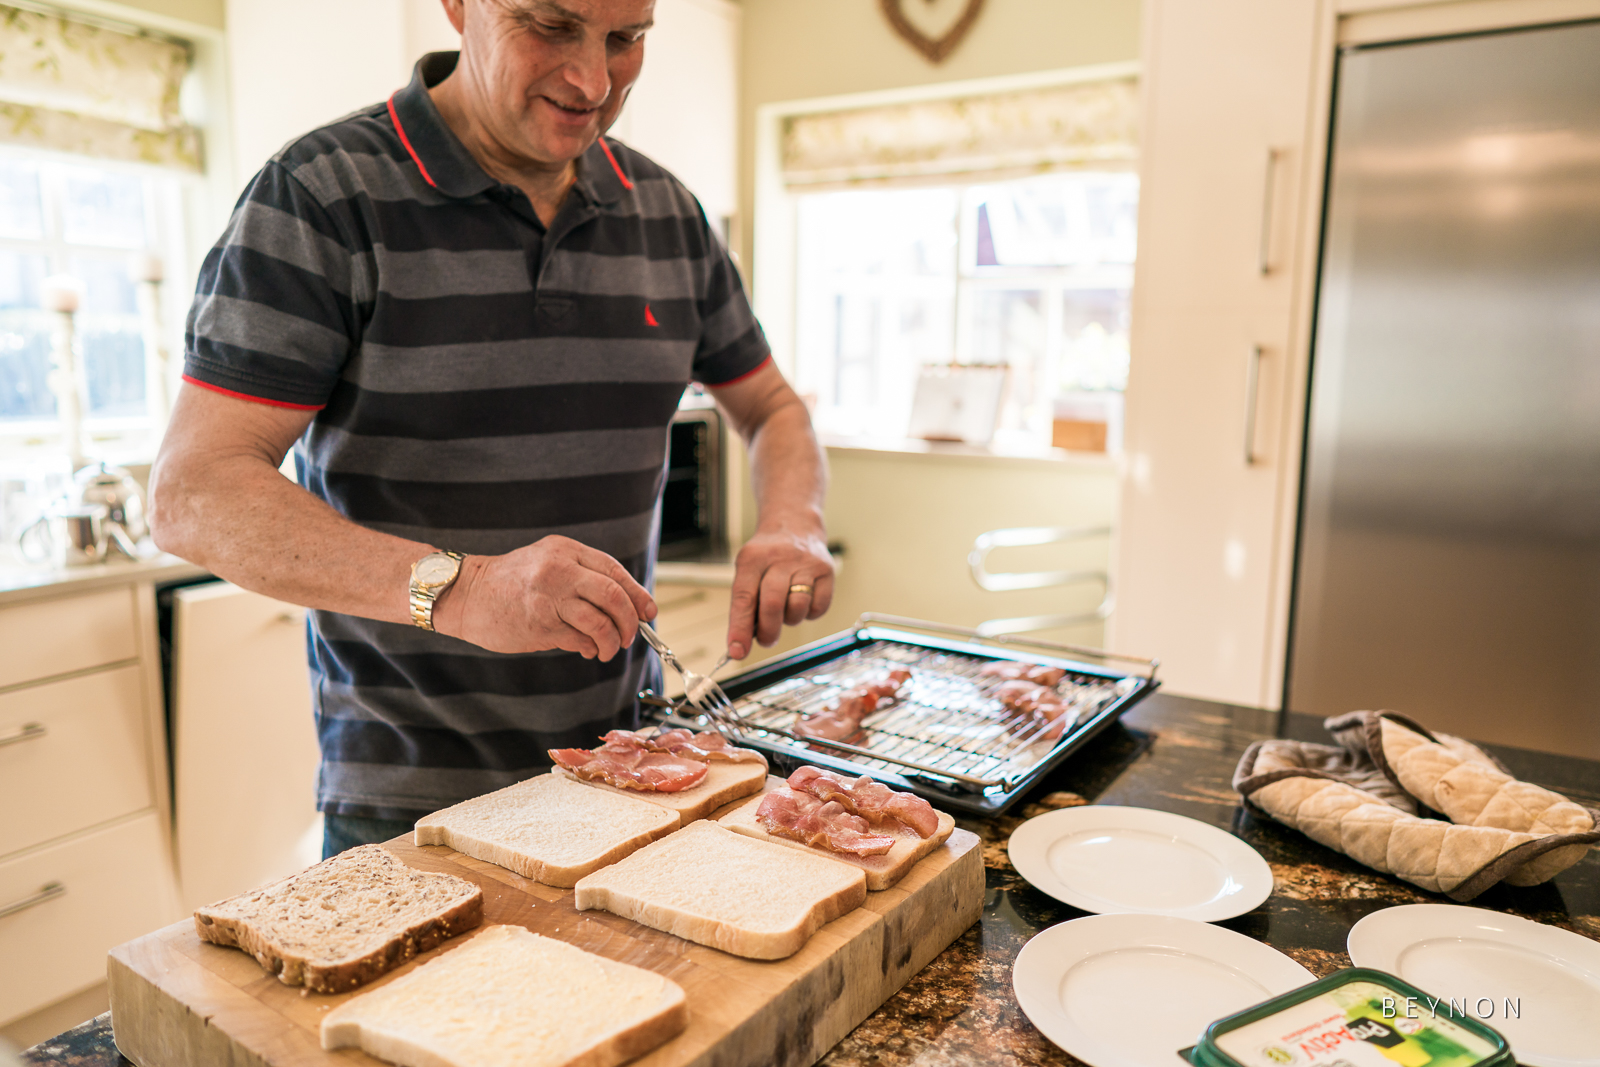 Dad making bacon sandwiches